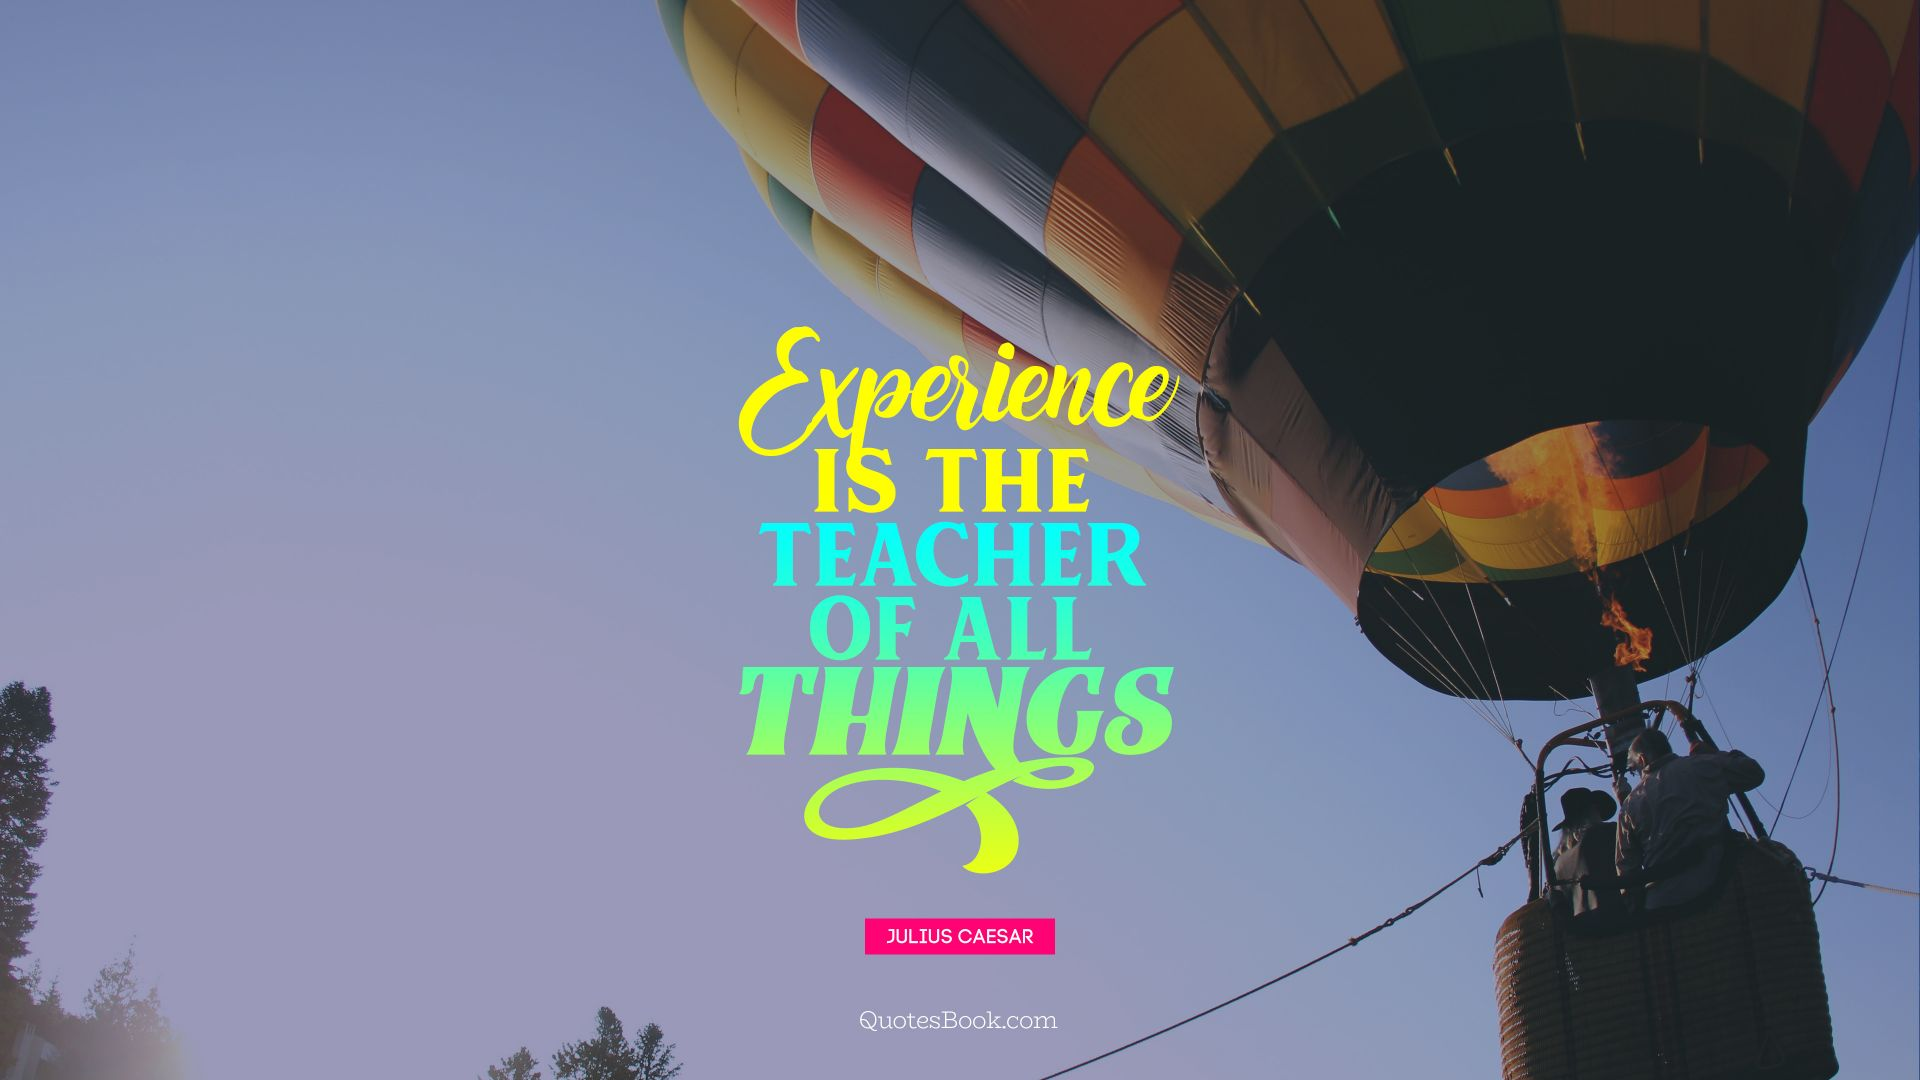 Experience is the teacher of all things. - Quote by Julius Caesar